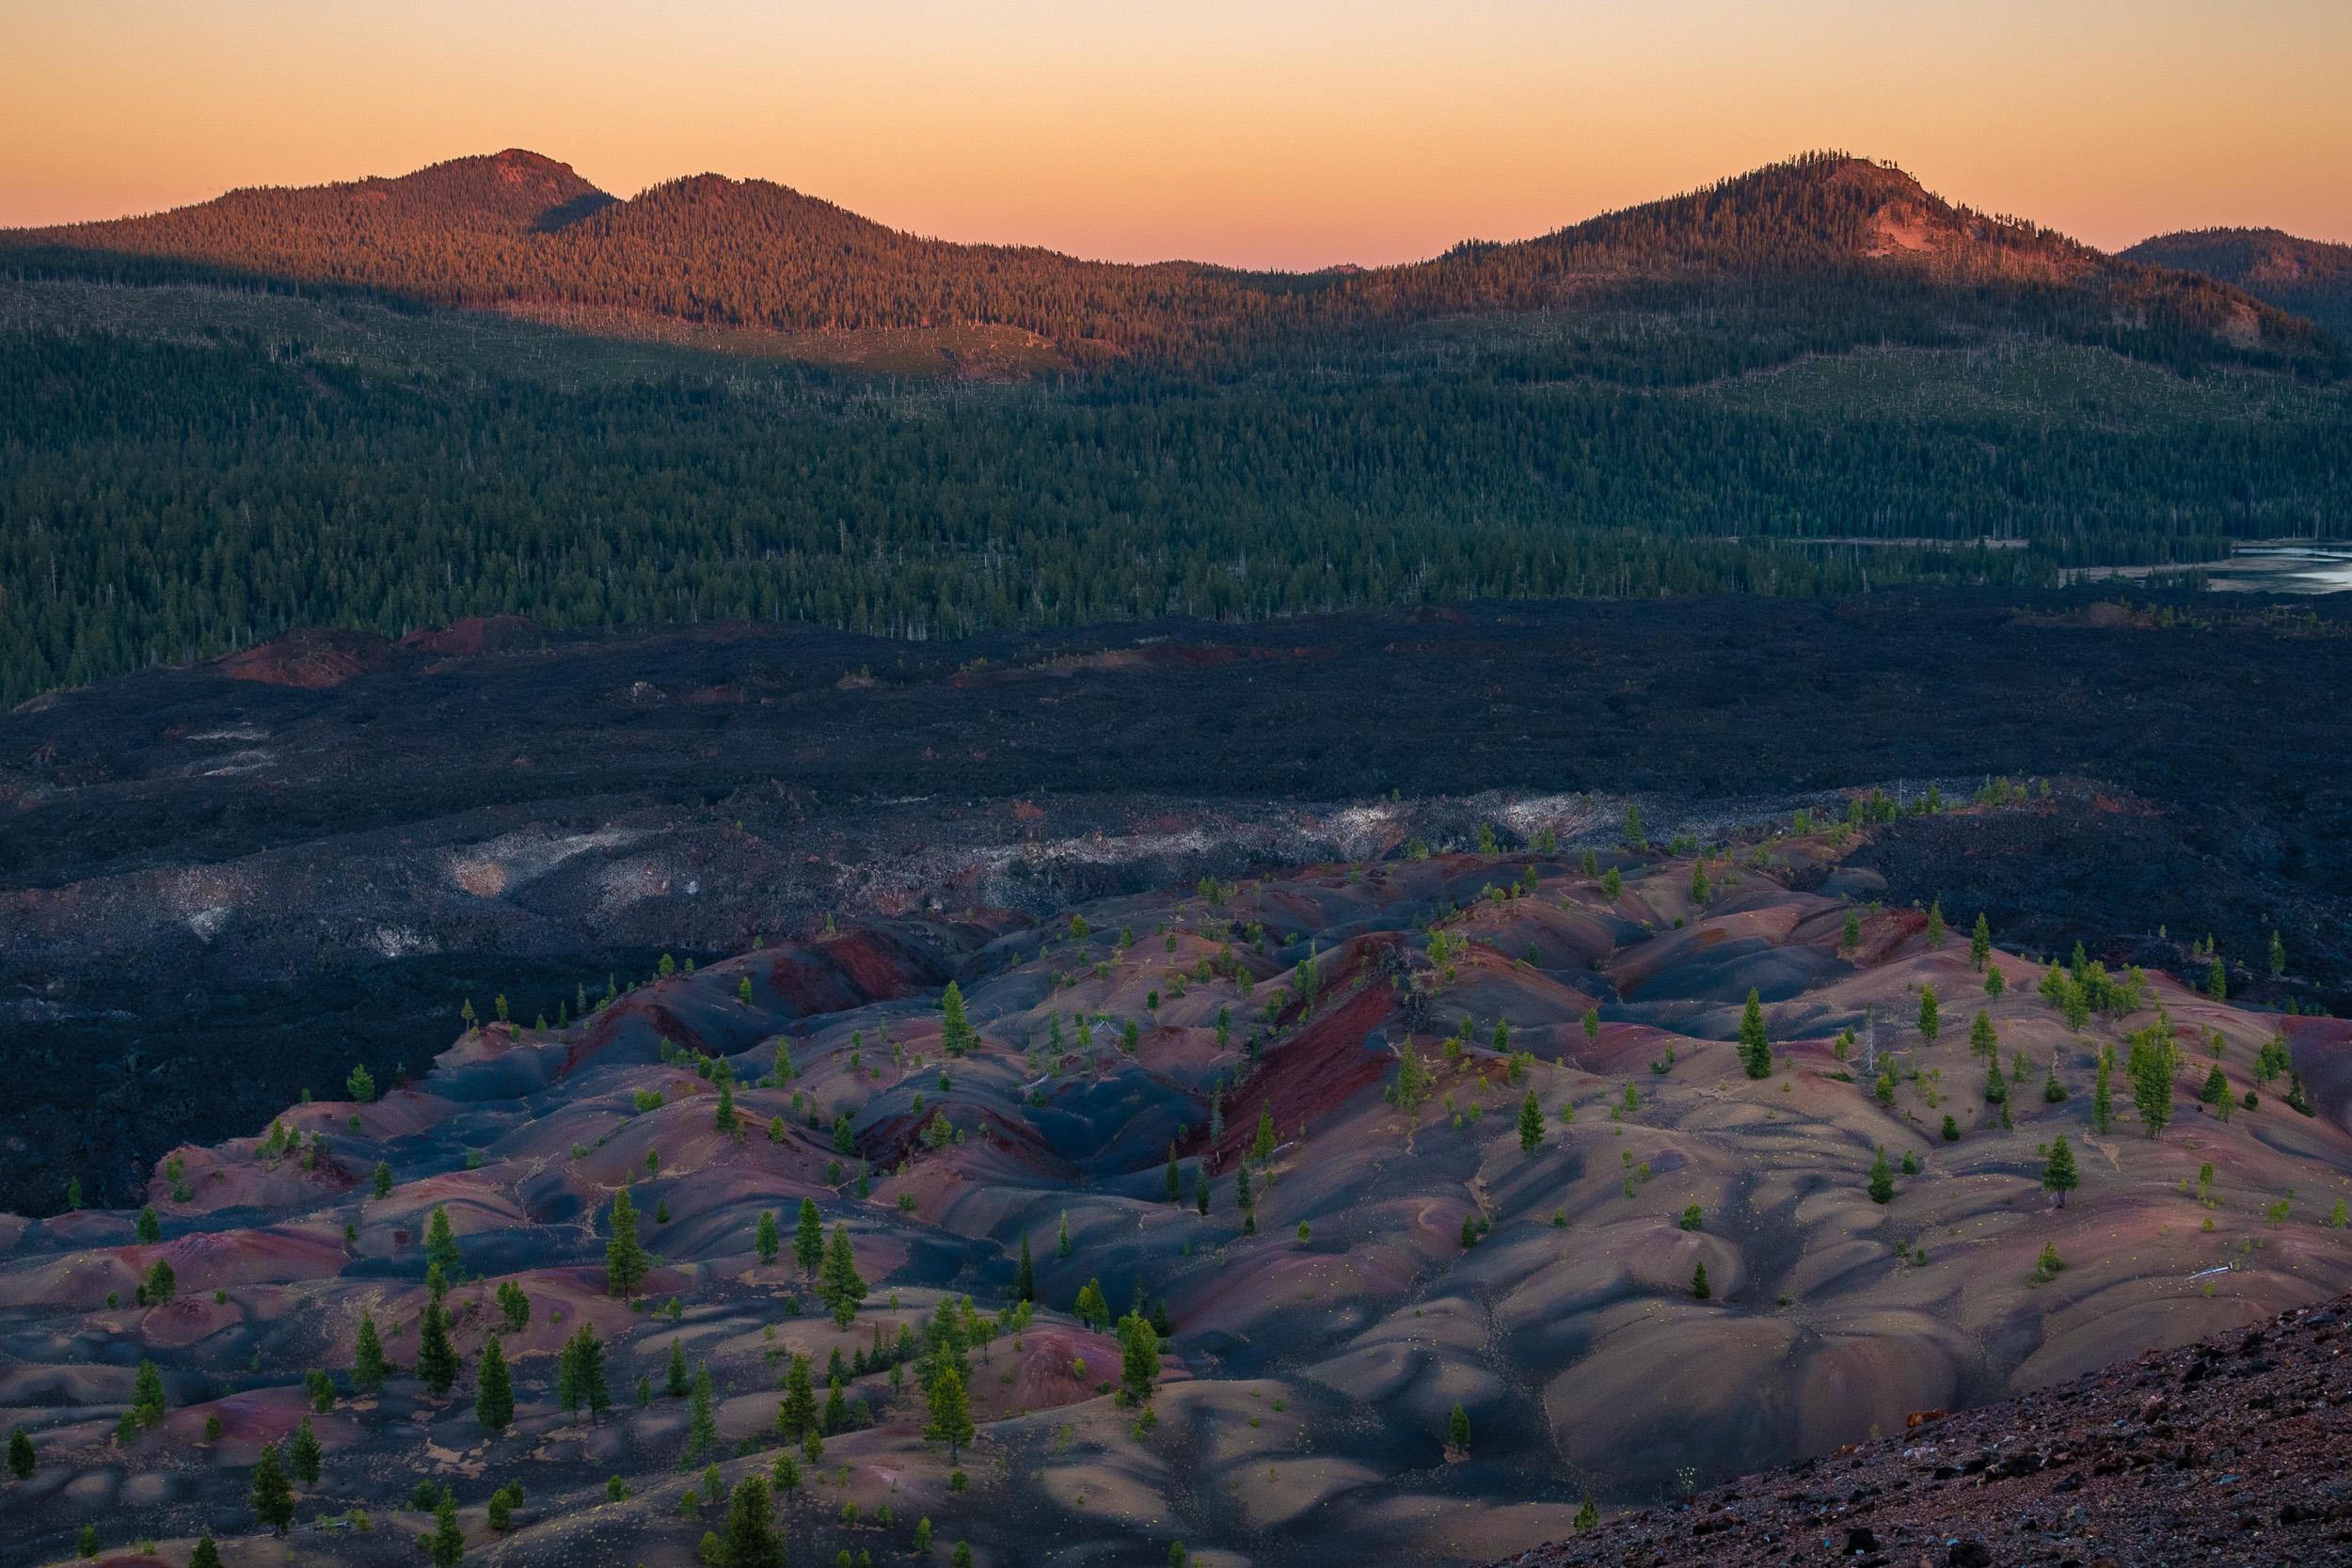 The Painted Dunes at sunset from Cinder Cone. Nikon D750, 24-120mm f/4 lens at 34mm. 1/25 second, f/8, ISO 400.